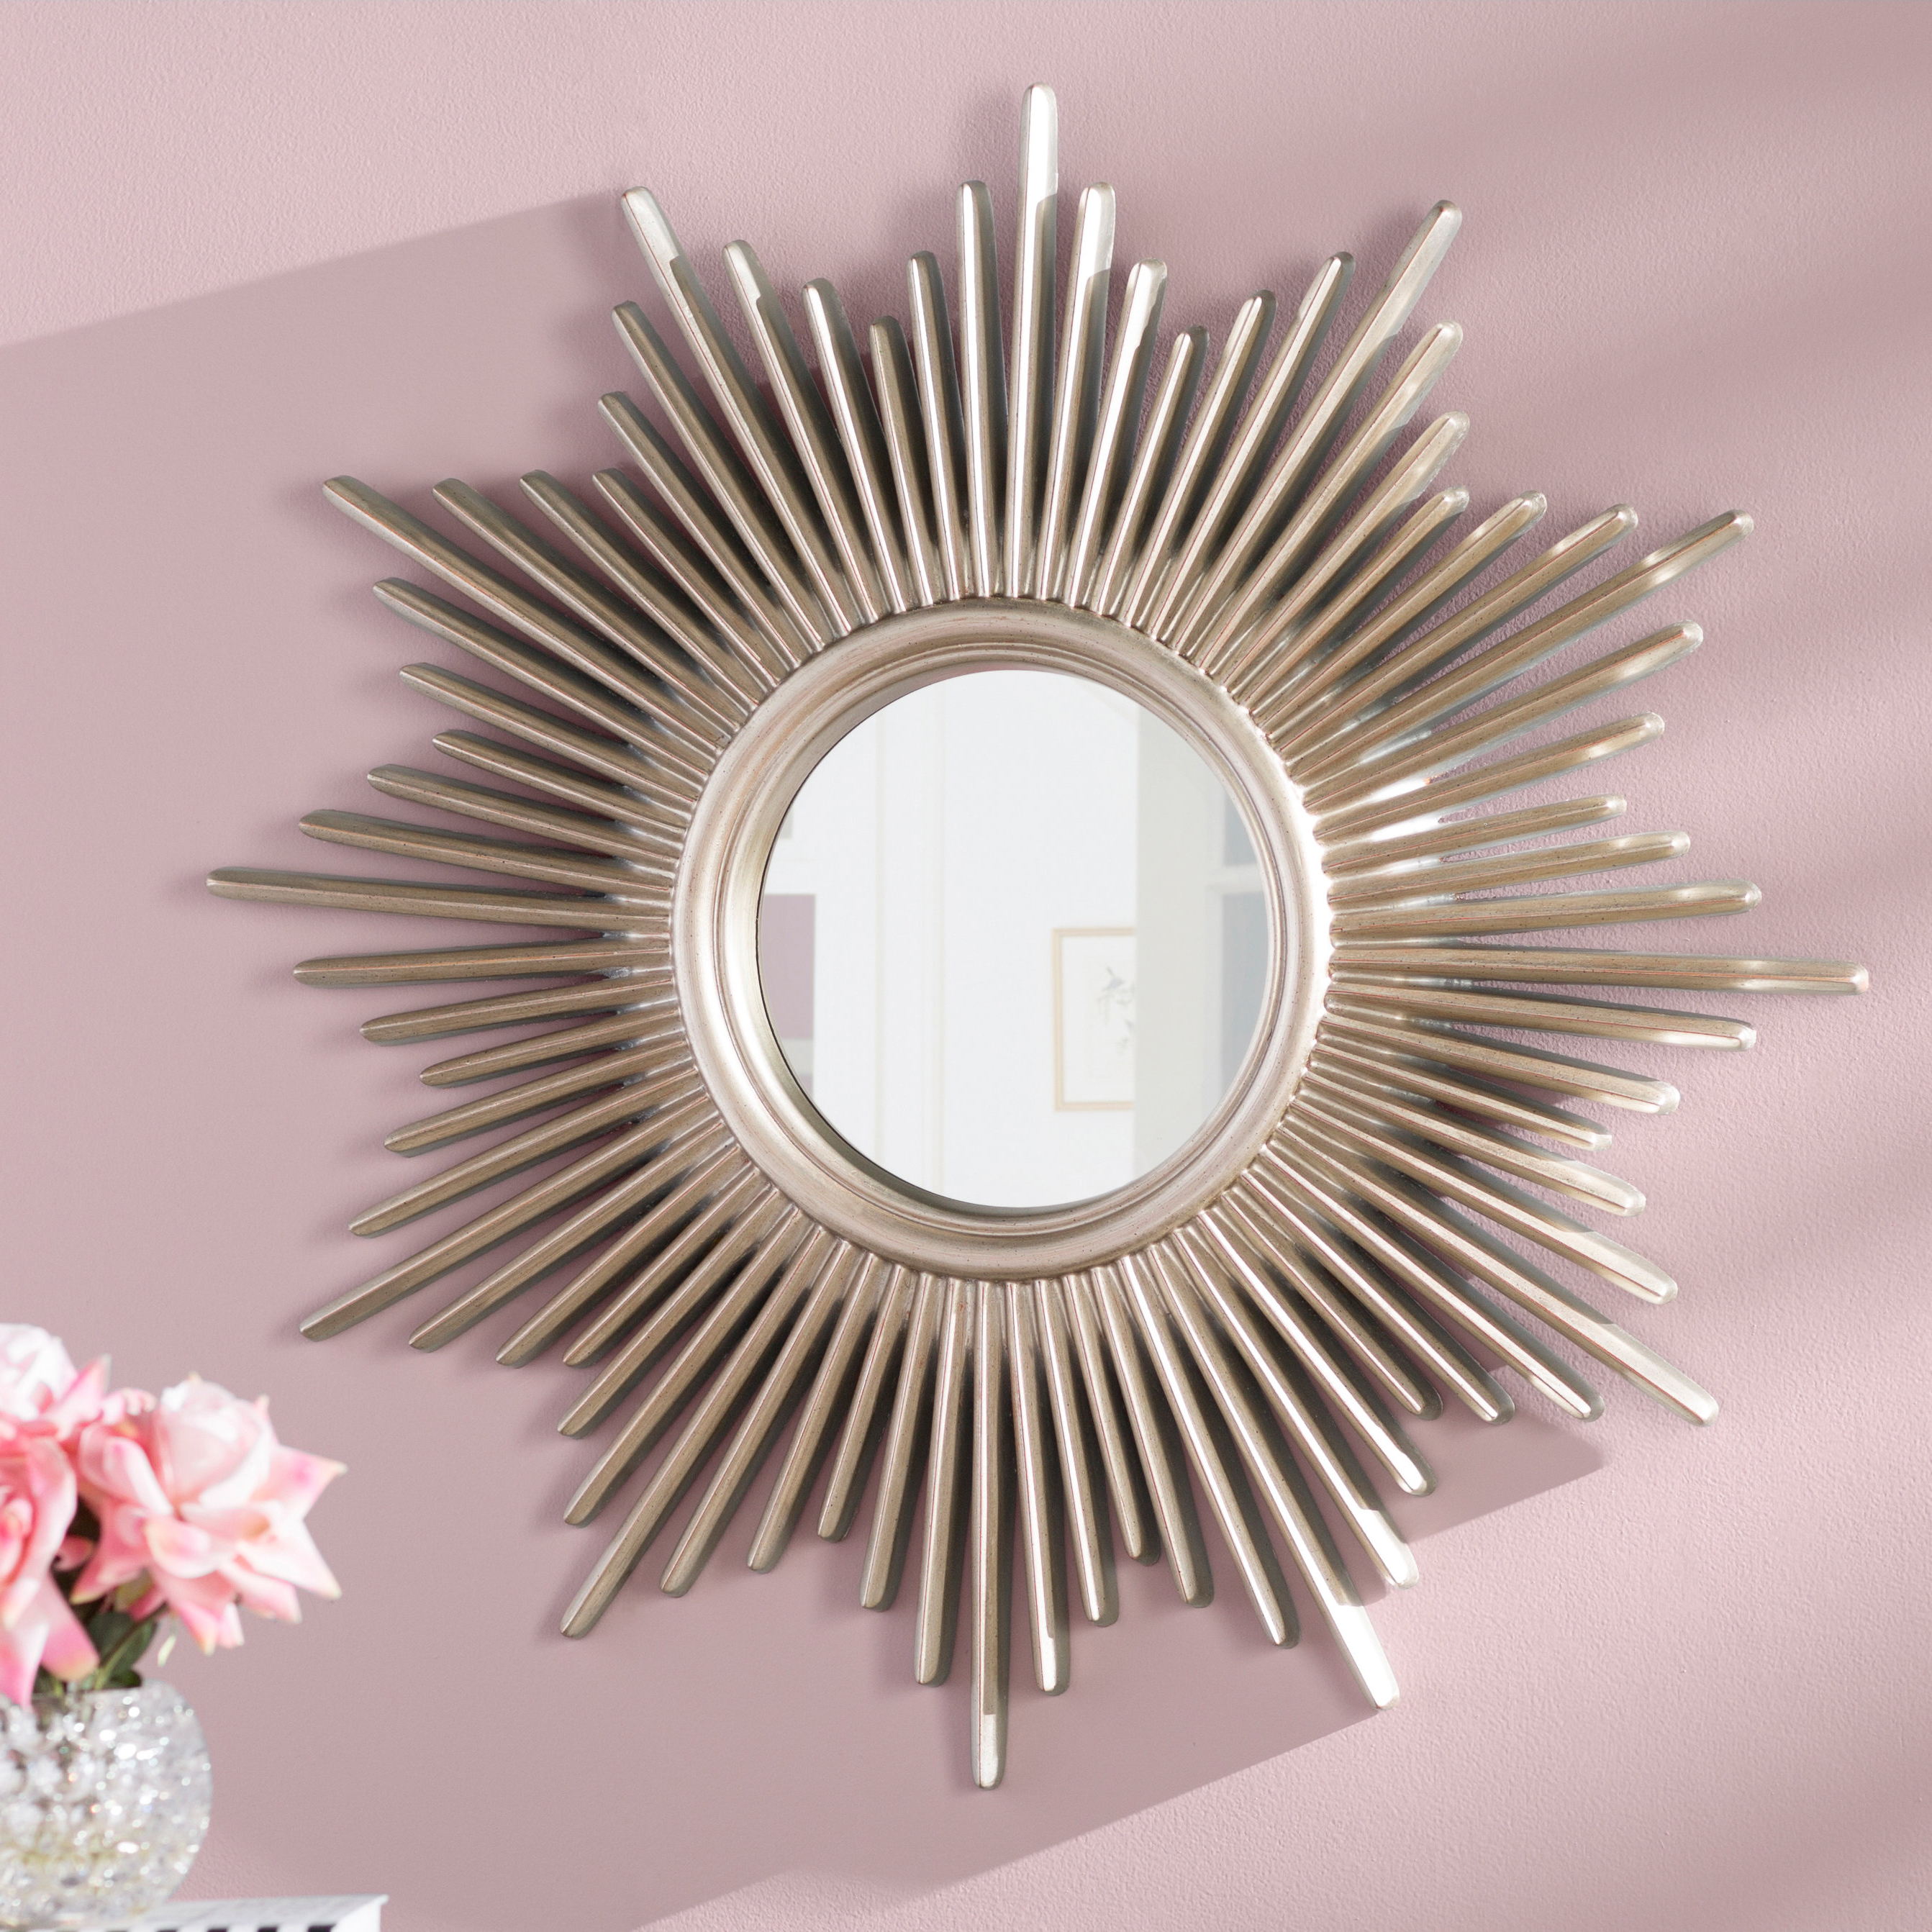 Best And Newest Willa Arlo Interiors Josephson Starburst Glam Beveled Accent Wall Throughout Starburst Wall Decor By Willa Arlo Interiors (View 2 of 20)